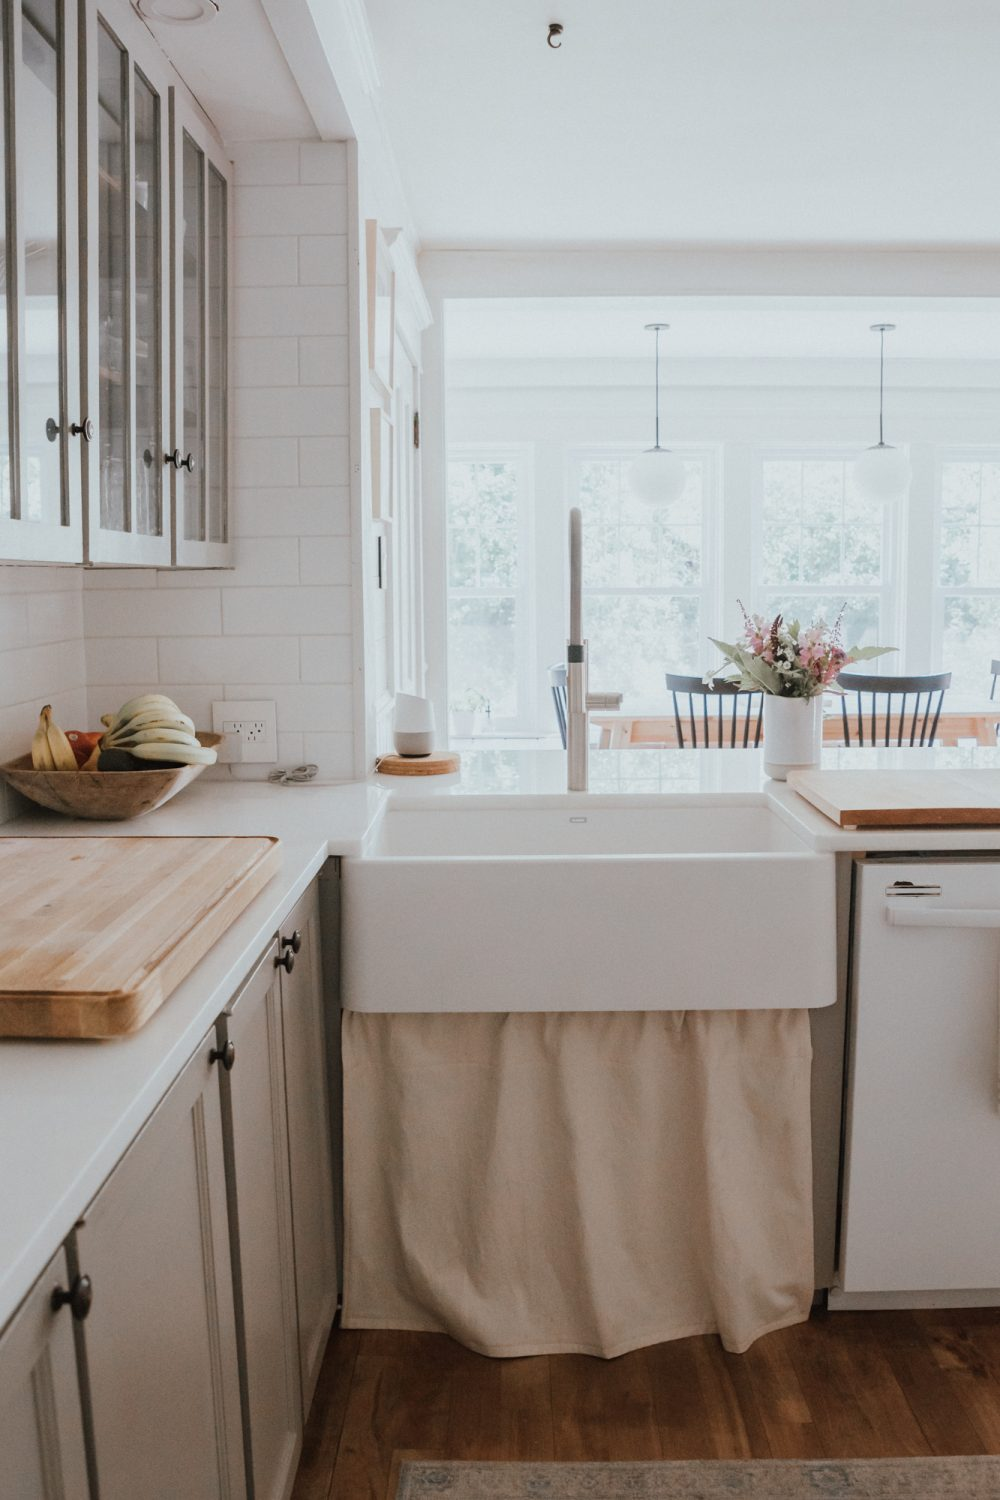 The Wild Decoelis| Our Kitchen Reno : Before and after | blanco farmhouse sink